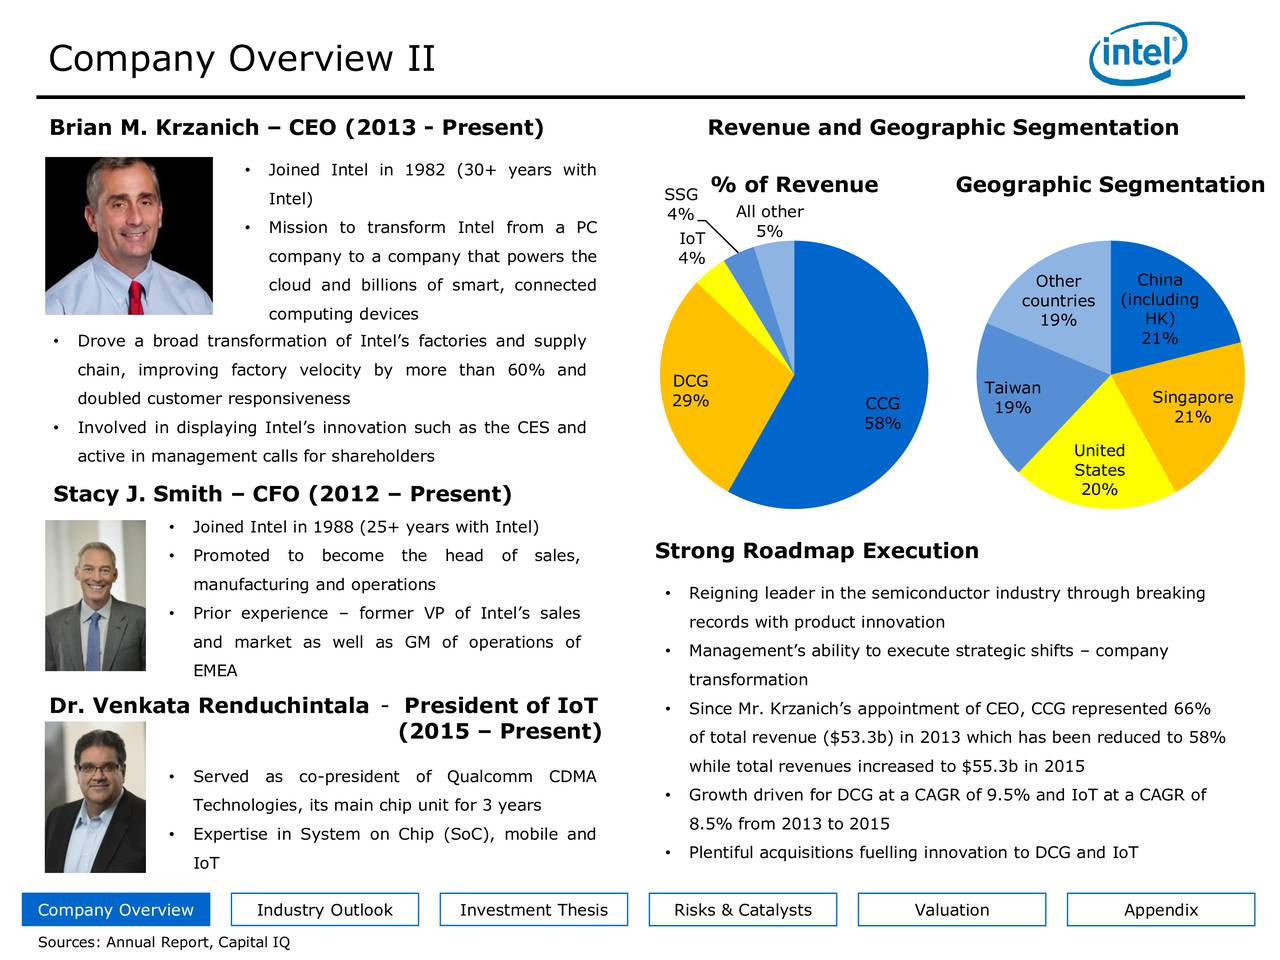 Brian M. Krzanich  CEO (2013 - Present) Revenue and Geographic Segmentation Joined Intel in 1982 (30+ years with % of Revenue Geographic Segmentation Intel) SSG 4% All other Mission to transform Intel from a PC IoT 5% company to a company that powers the 4% cloud and billions of smart, connected Other China countries (including computing devices 19% HK) 21% Drove a broad transformation of Intels factories and supply chain, improving factory velocity by more than 60% and DCG Taiwan doubled customer responsiveness 29% CCG Singapore 58% 19% 21% Involved in displaying Intels innovation such as the CES and active in management calls for shareholders United States 20% Stacy J. Smith  CFO (2012  Present) Joined Intel in 1988 (25+ years with Intel) Promoted to become the head of sales, Strong Roadmap Execution manufacturing and operations Reigning leader in the semiconductor industry through breaking Prior experience  former VP of Intels sales records with product innovation and market as well as GM of operations of Managements ability to execute strategic shifts  company EMEA transformation Dr. Venkata Renduchintala - President of IoT  Since Mr. Krzanichs appointment of CEO, CCG represented 66% (2015  Present) of total revenue ($53.3b) in 2013 which has been reduced to 58% Served as co-president of Qualcomm CDMA while total revenues increased to $55.3b in 2015 Technologies, its main chip unit for 3 years  Growth driven for DCG at a CAGR of 9.5% and IoT at a CAGR of 8.5% from 2013 to 2015 Expertise in System on Chip (SoC), mobile and Plentiful acquisitions fuelling innovation to DCG and IoT IoT Company Overview Industry Outlook Investment Thesis Risks & Catalysts Valuation Appendix Sources: Annual Report, Capital IQ